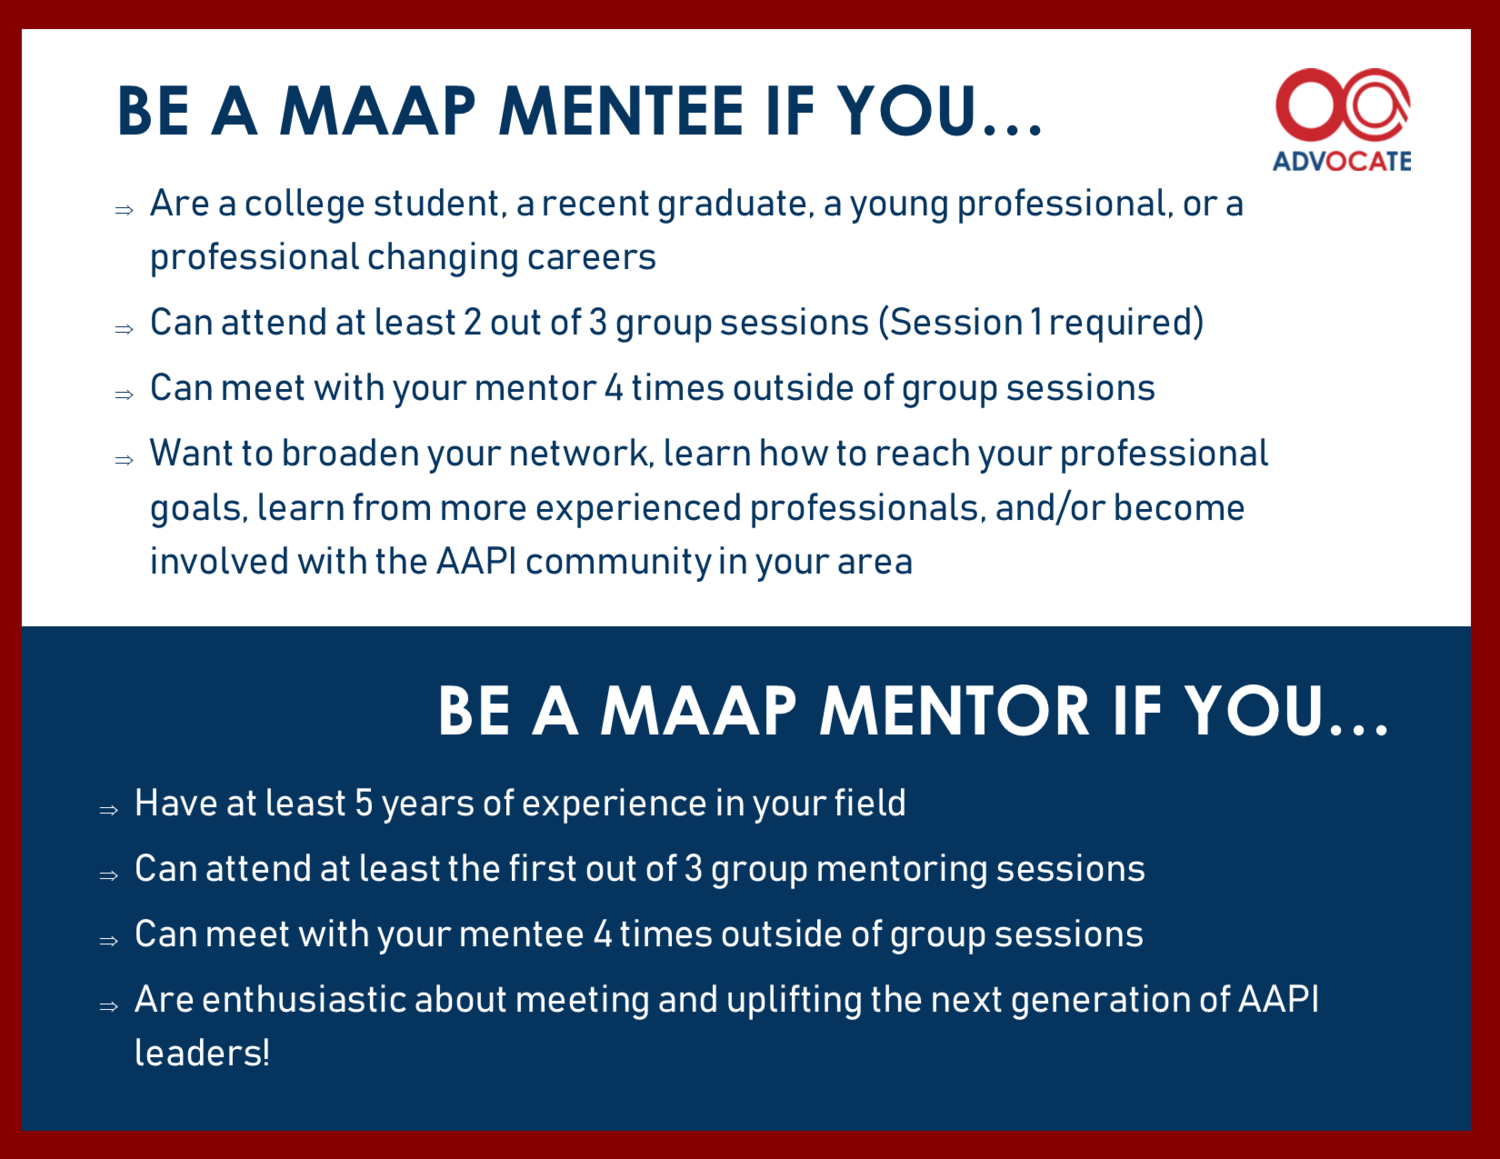 Be+a+mentor+or+mentee+if....png